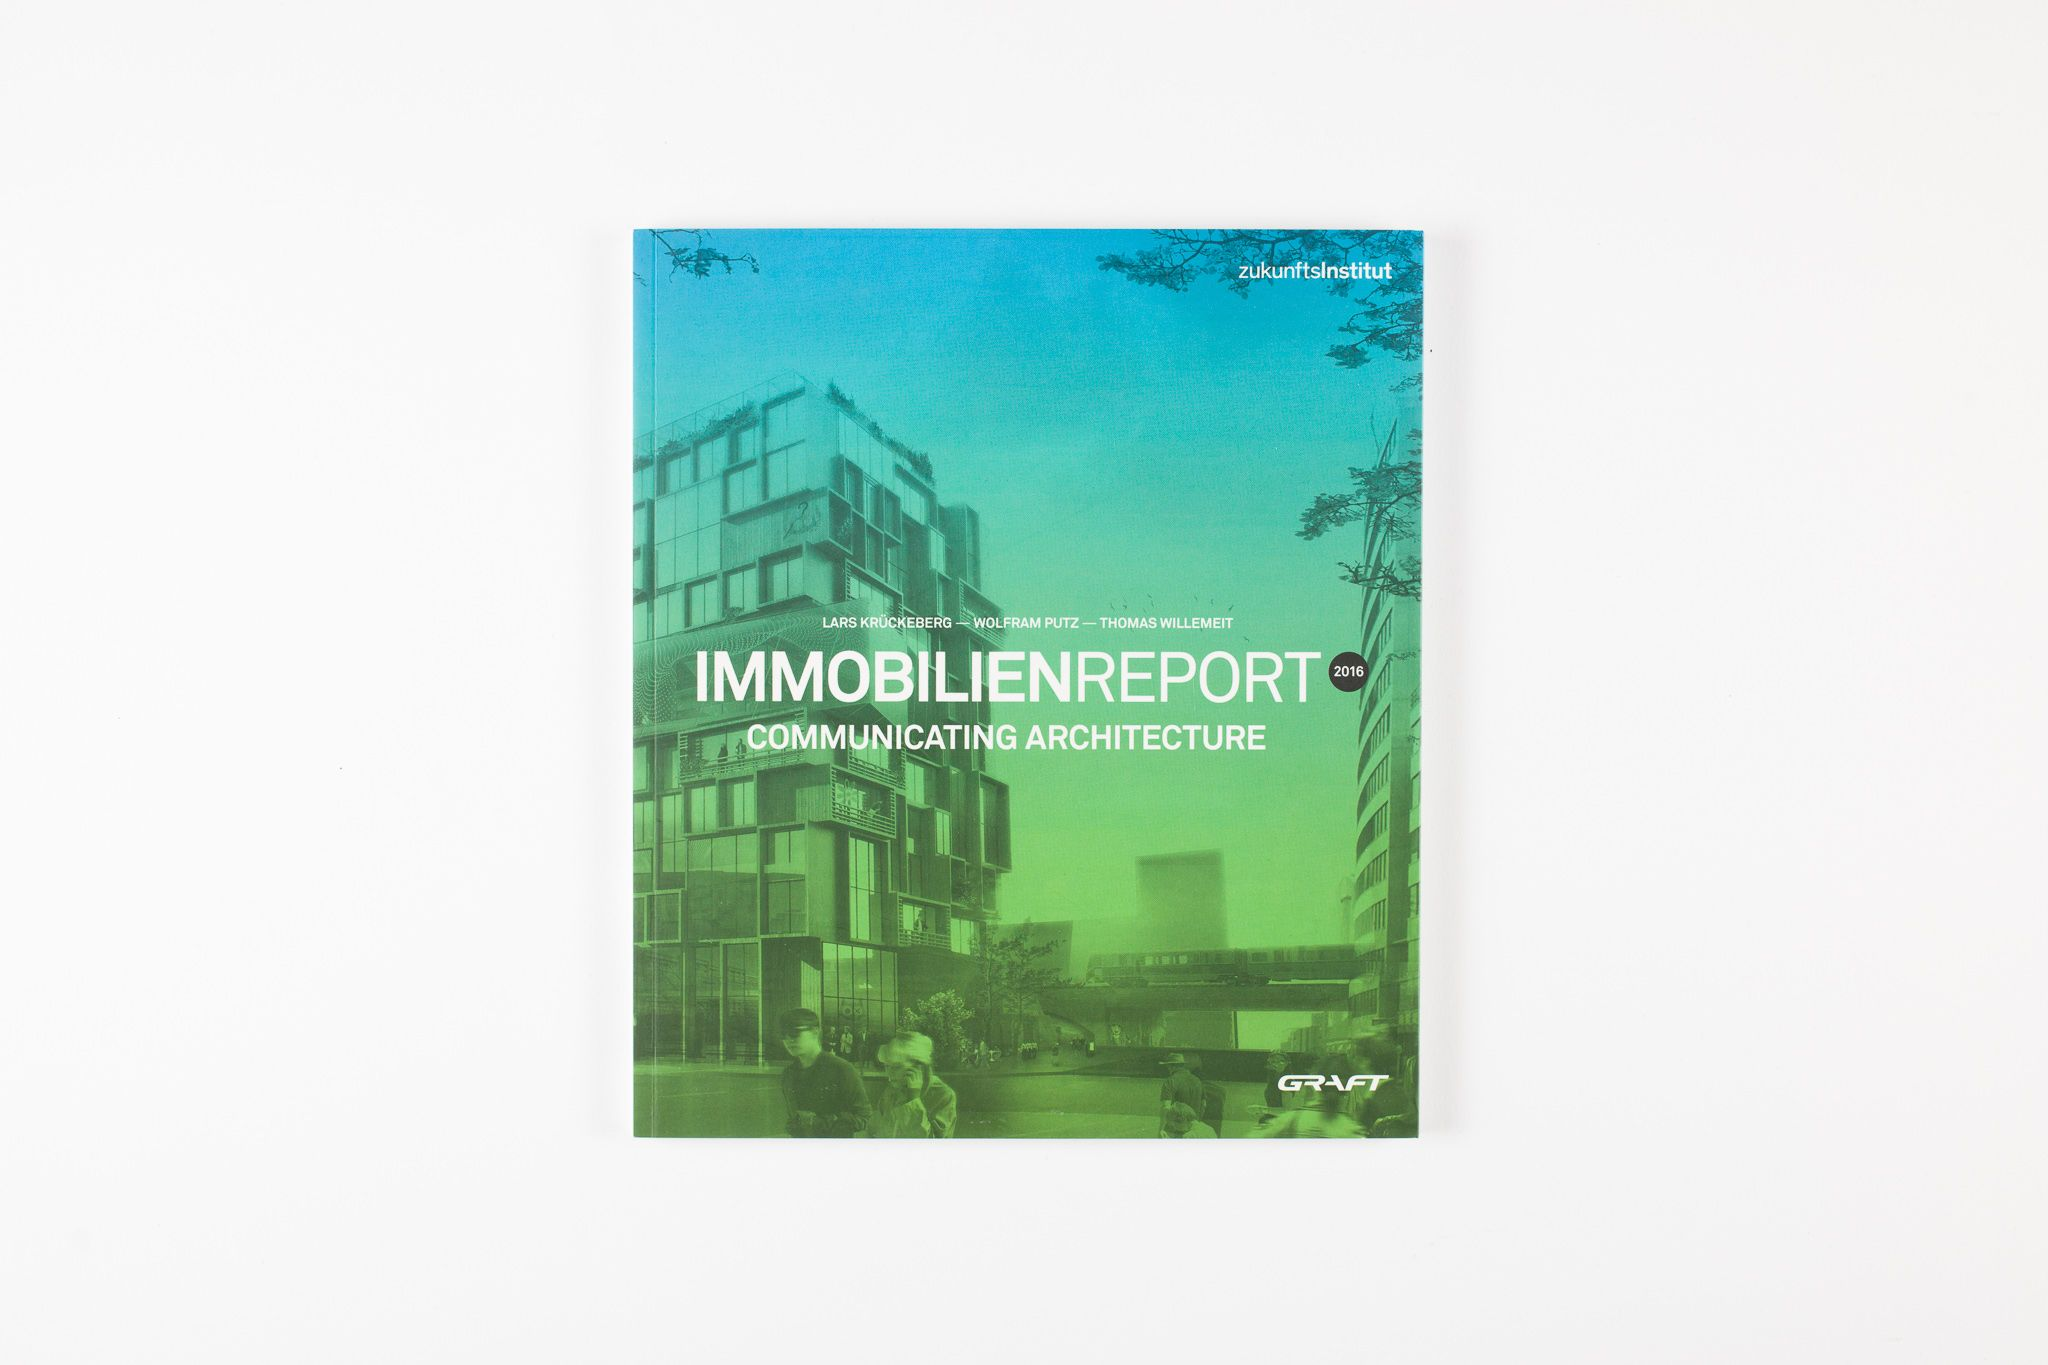 IMMOBILIEN REPORT 2016 – COMMUNICATING ARCHITECTURE